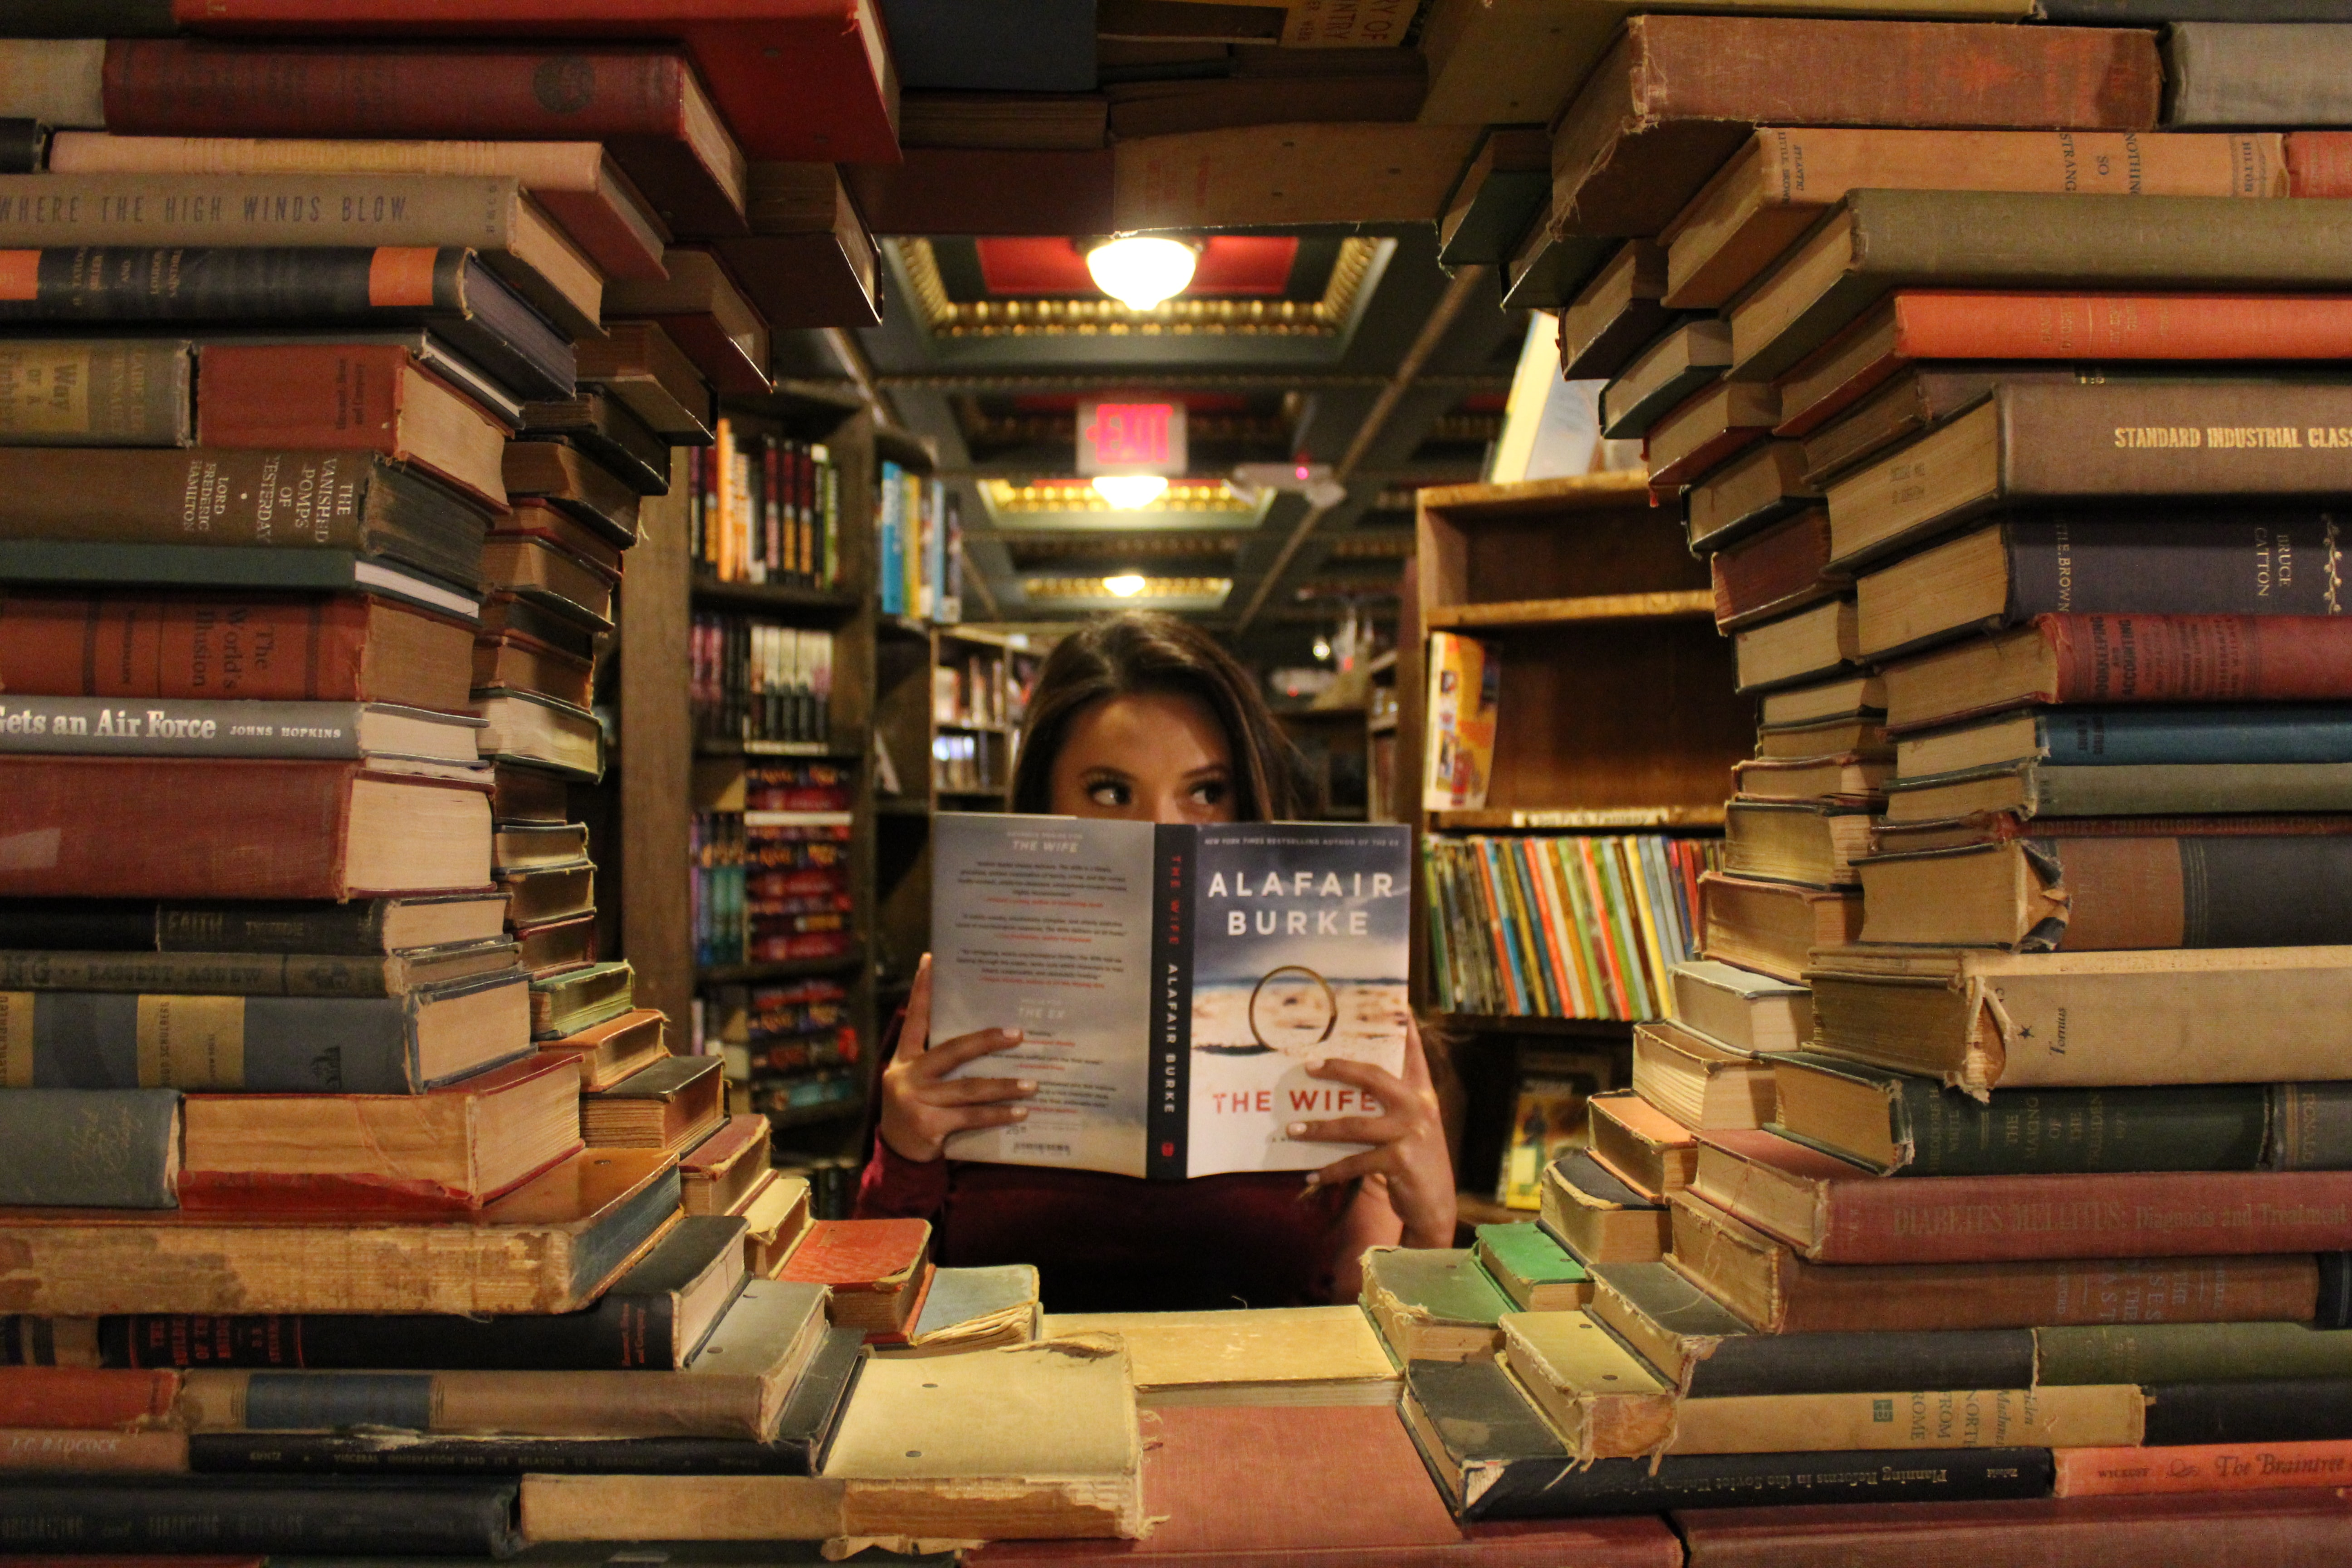 Stacks of books with a circular opening. A woman holds a book.